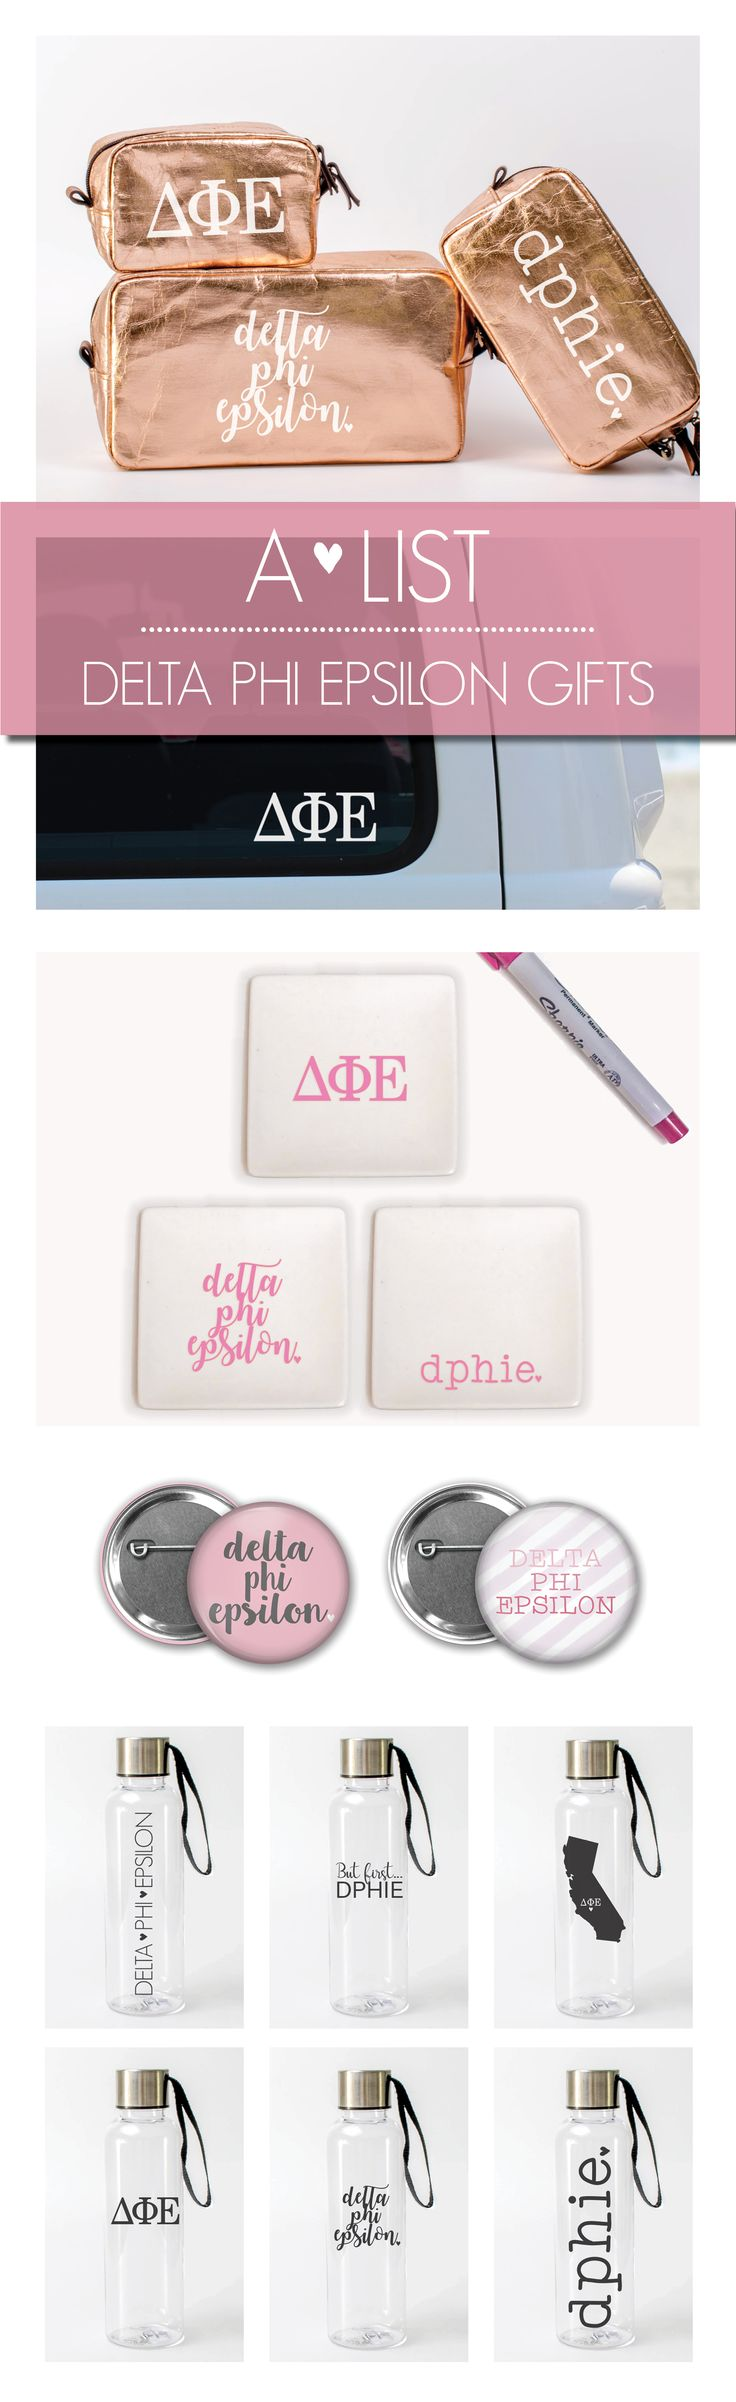 Check out these super cute Delta Phi Epsilon Gifts - perfect for sorority bid day, big little reveal, initiation gifts, etc.